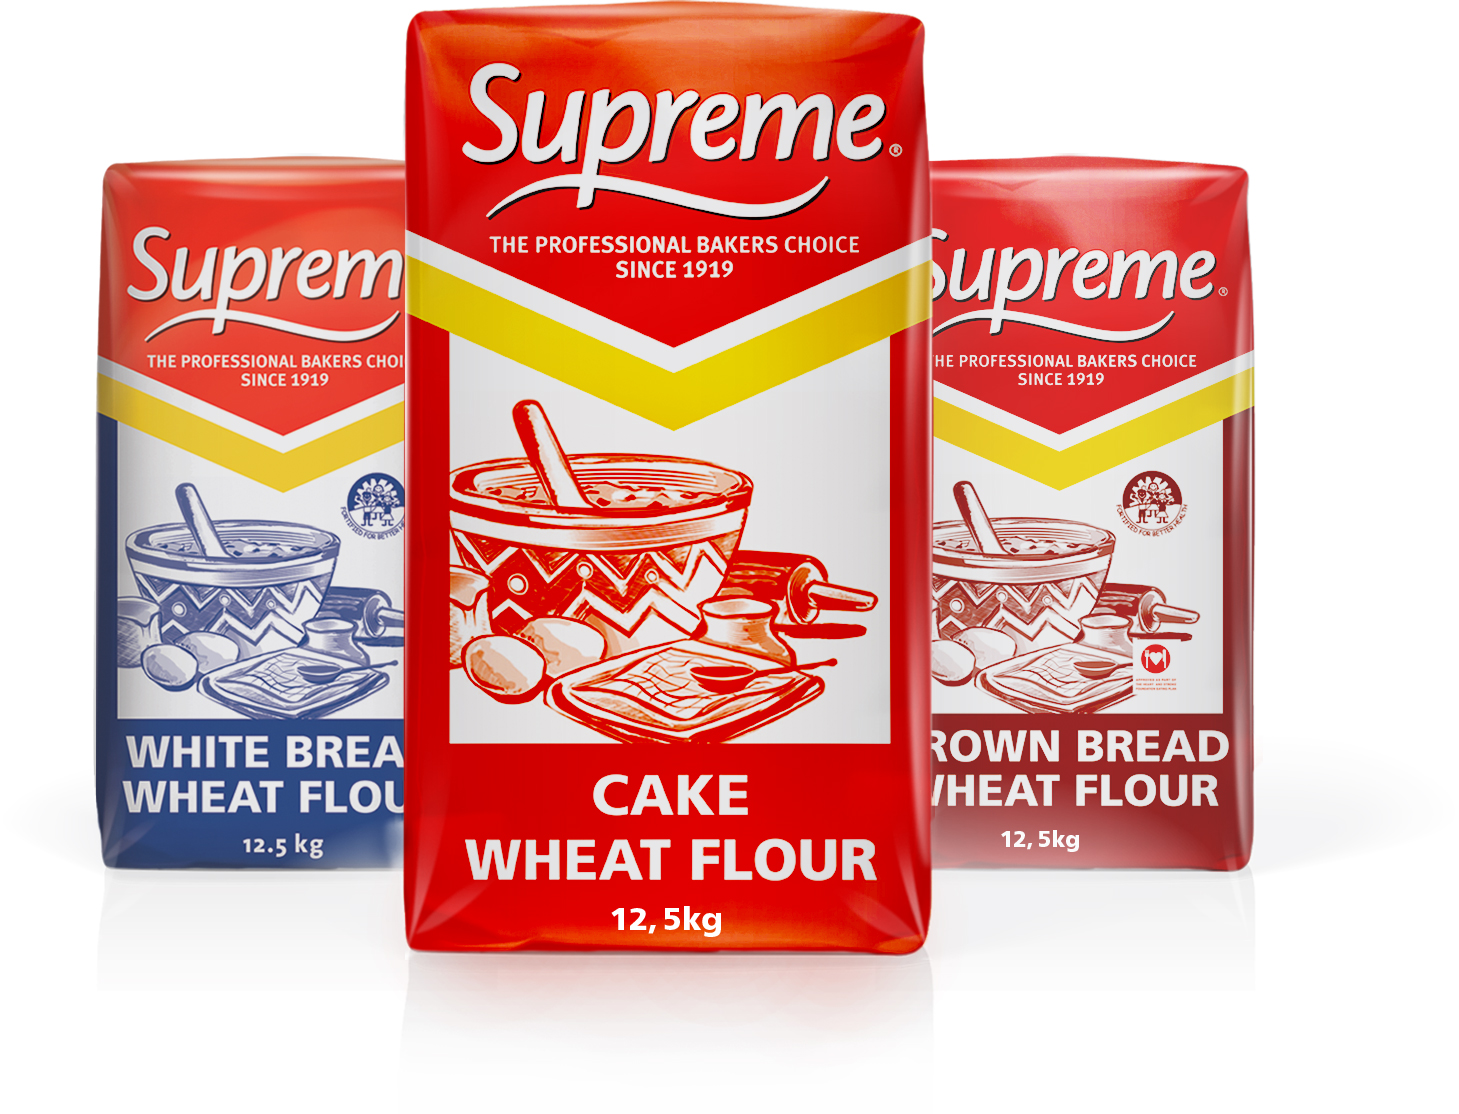 A selection of SUPREME flour products